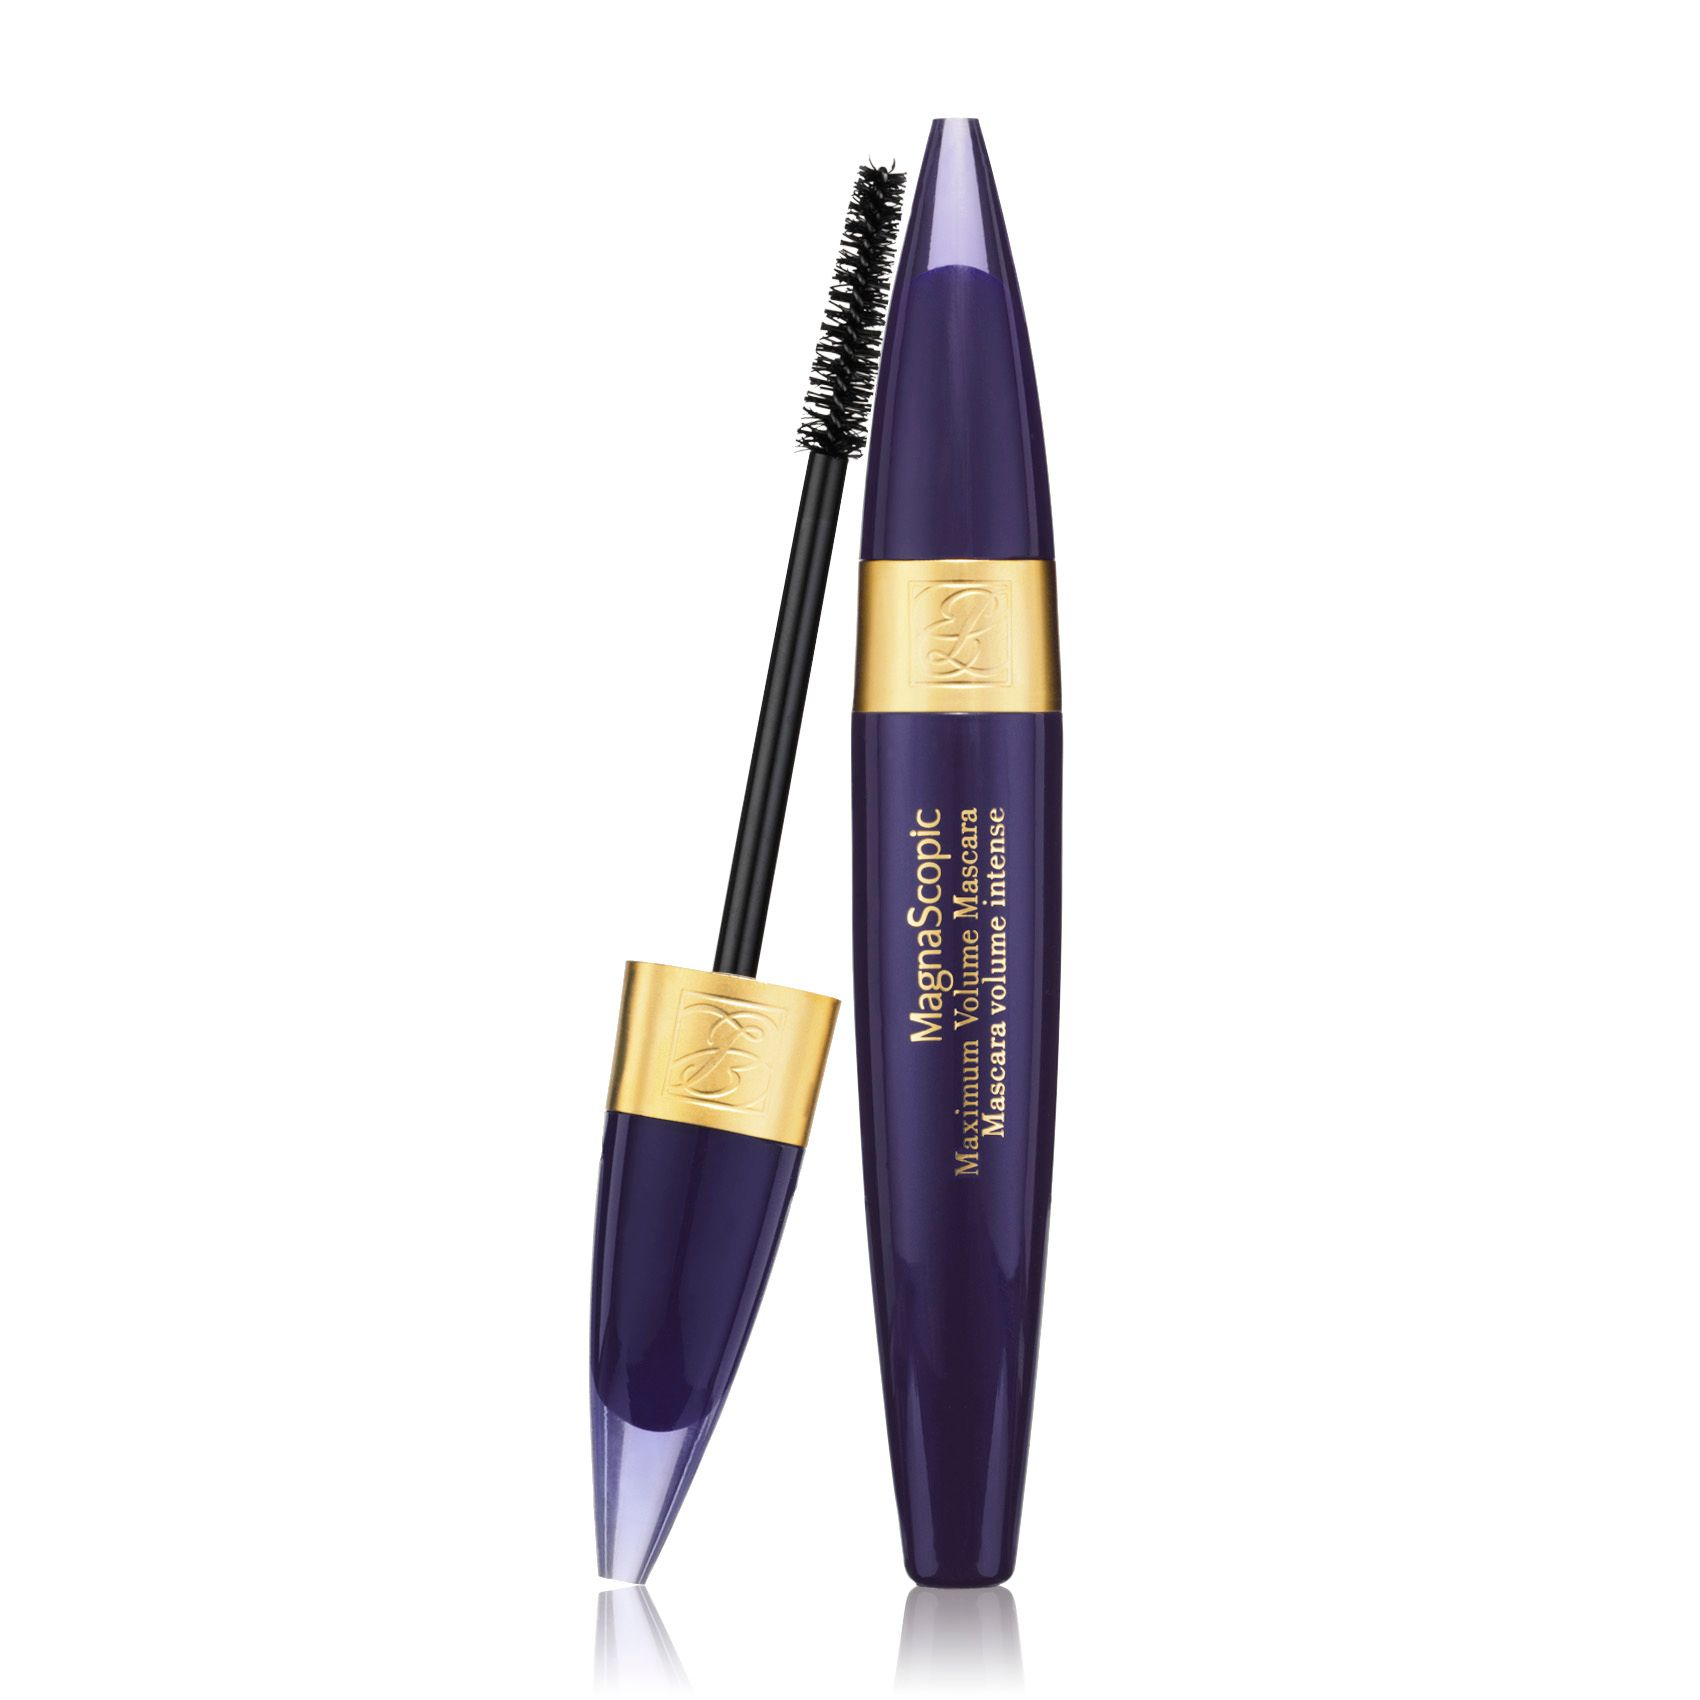 Magnascopic Maximum Volume Mascara